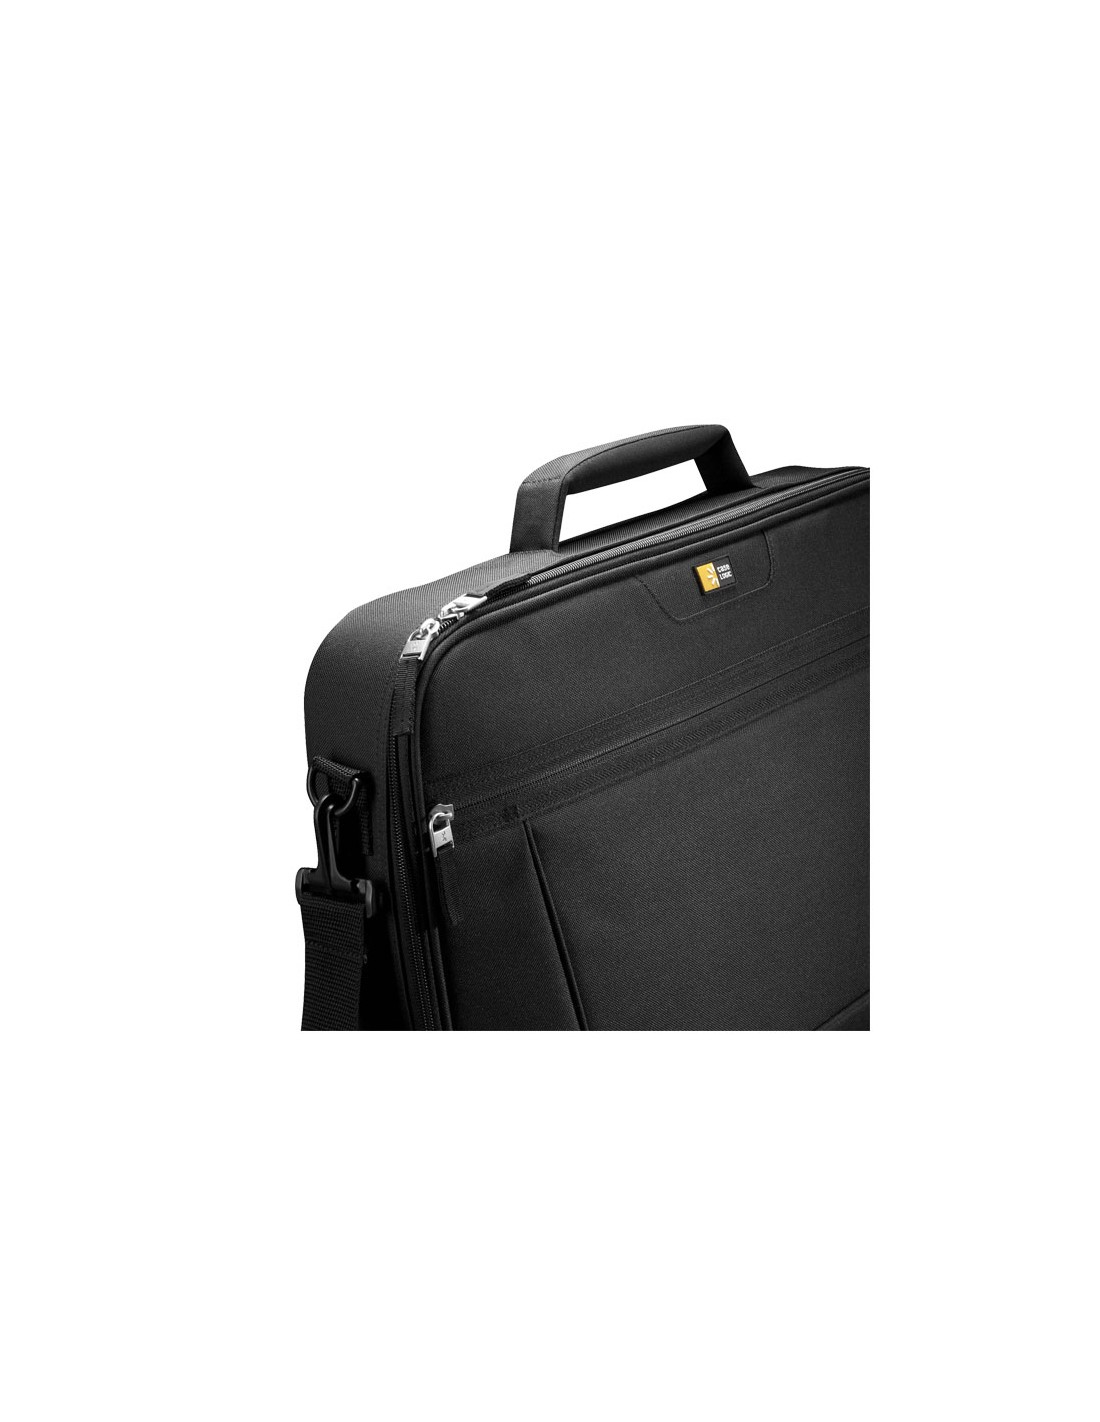 1cced9850f468 Laptop Case Office 15.6